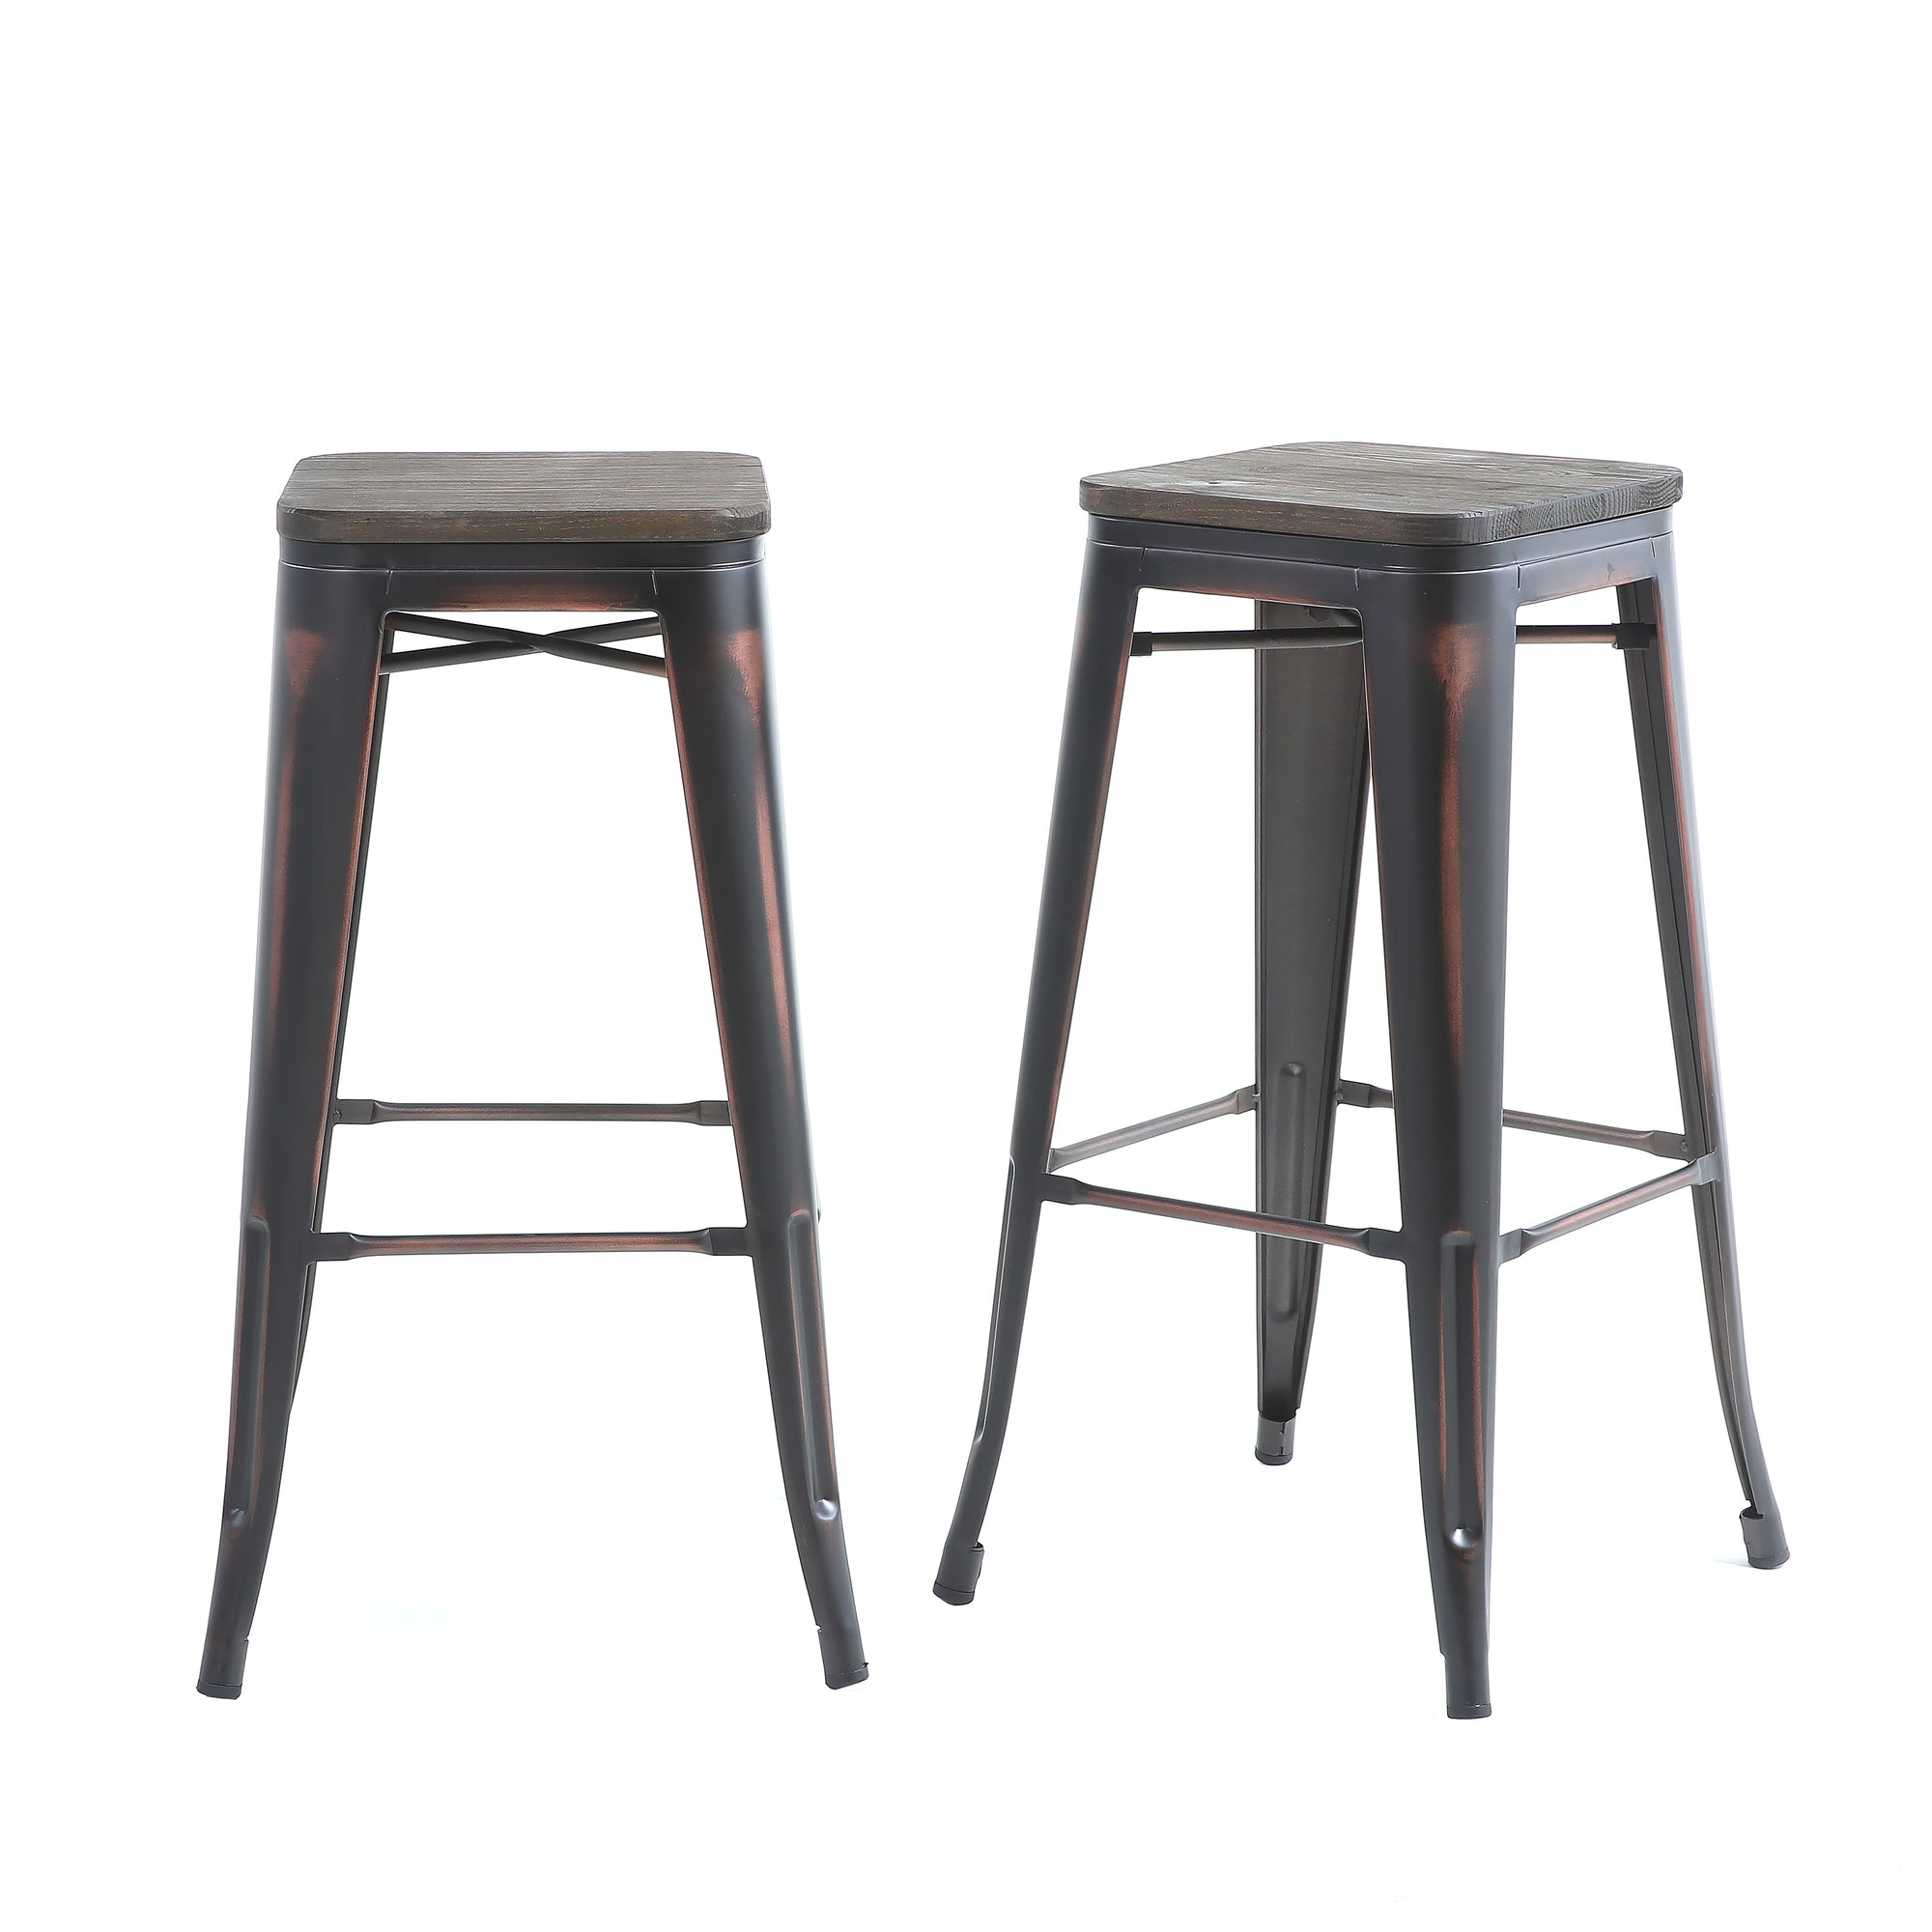 Buschman Set Of 2 Distressed Black Wooden Seat 30 Inch Bar Height